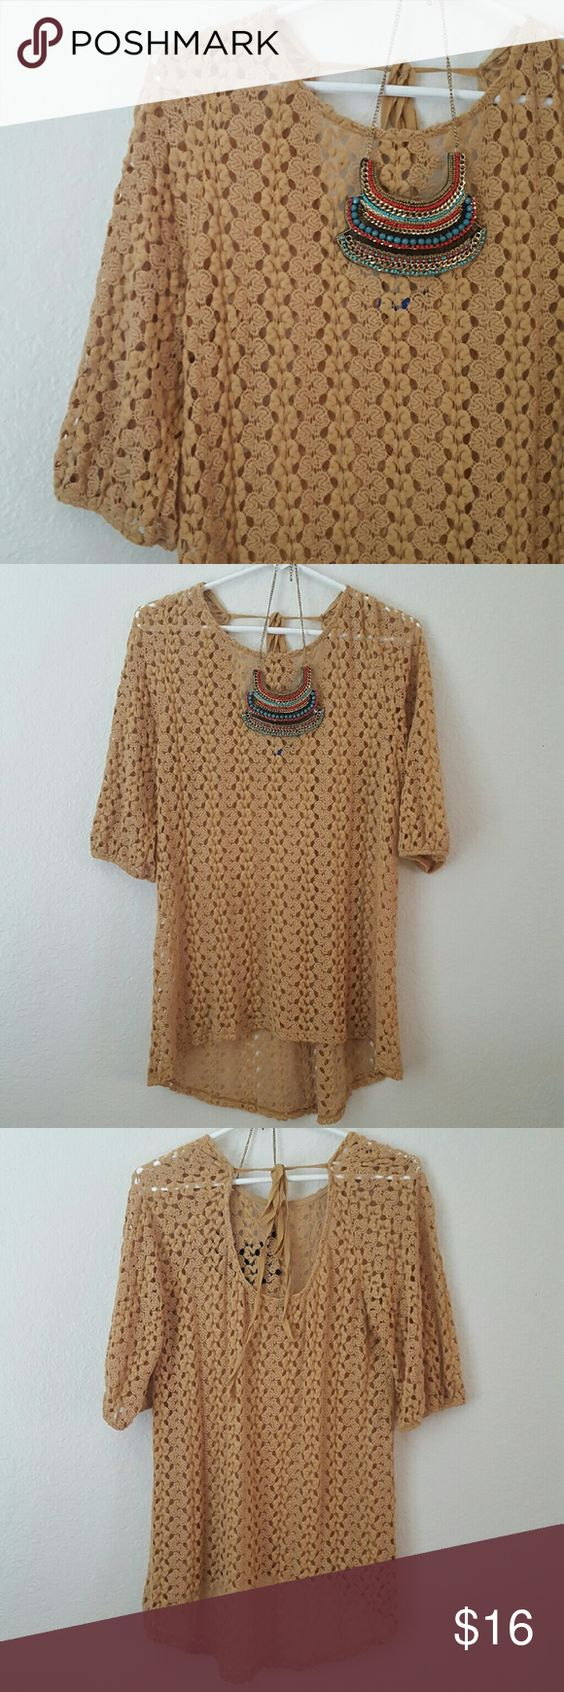 """Knitted mustard boutique top Sweet Claire boutique top. Knitted/crocheted top. Hi lo, 3/4 sleeves and adorable tie back cut out.   No size tag but fits a small to small medium best. Underarm to underarm 18"""" length 26"""" in front 32"""" in back   Excellent condition. Cute with skinnies and booties!  **necklace not for sale** Sweet Claire Tops"""